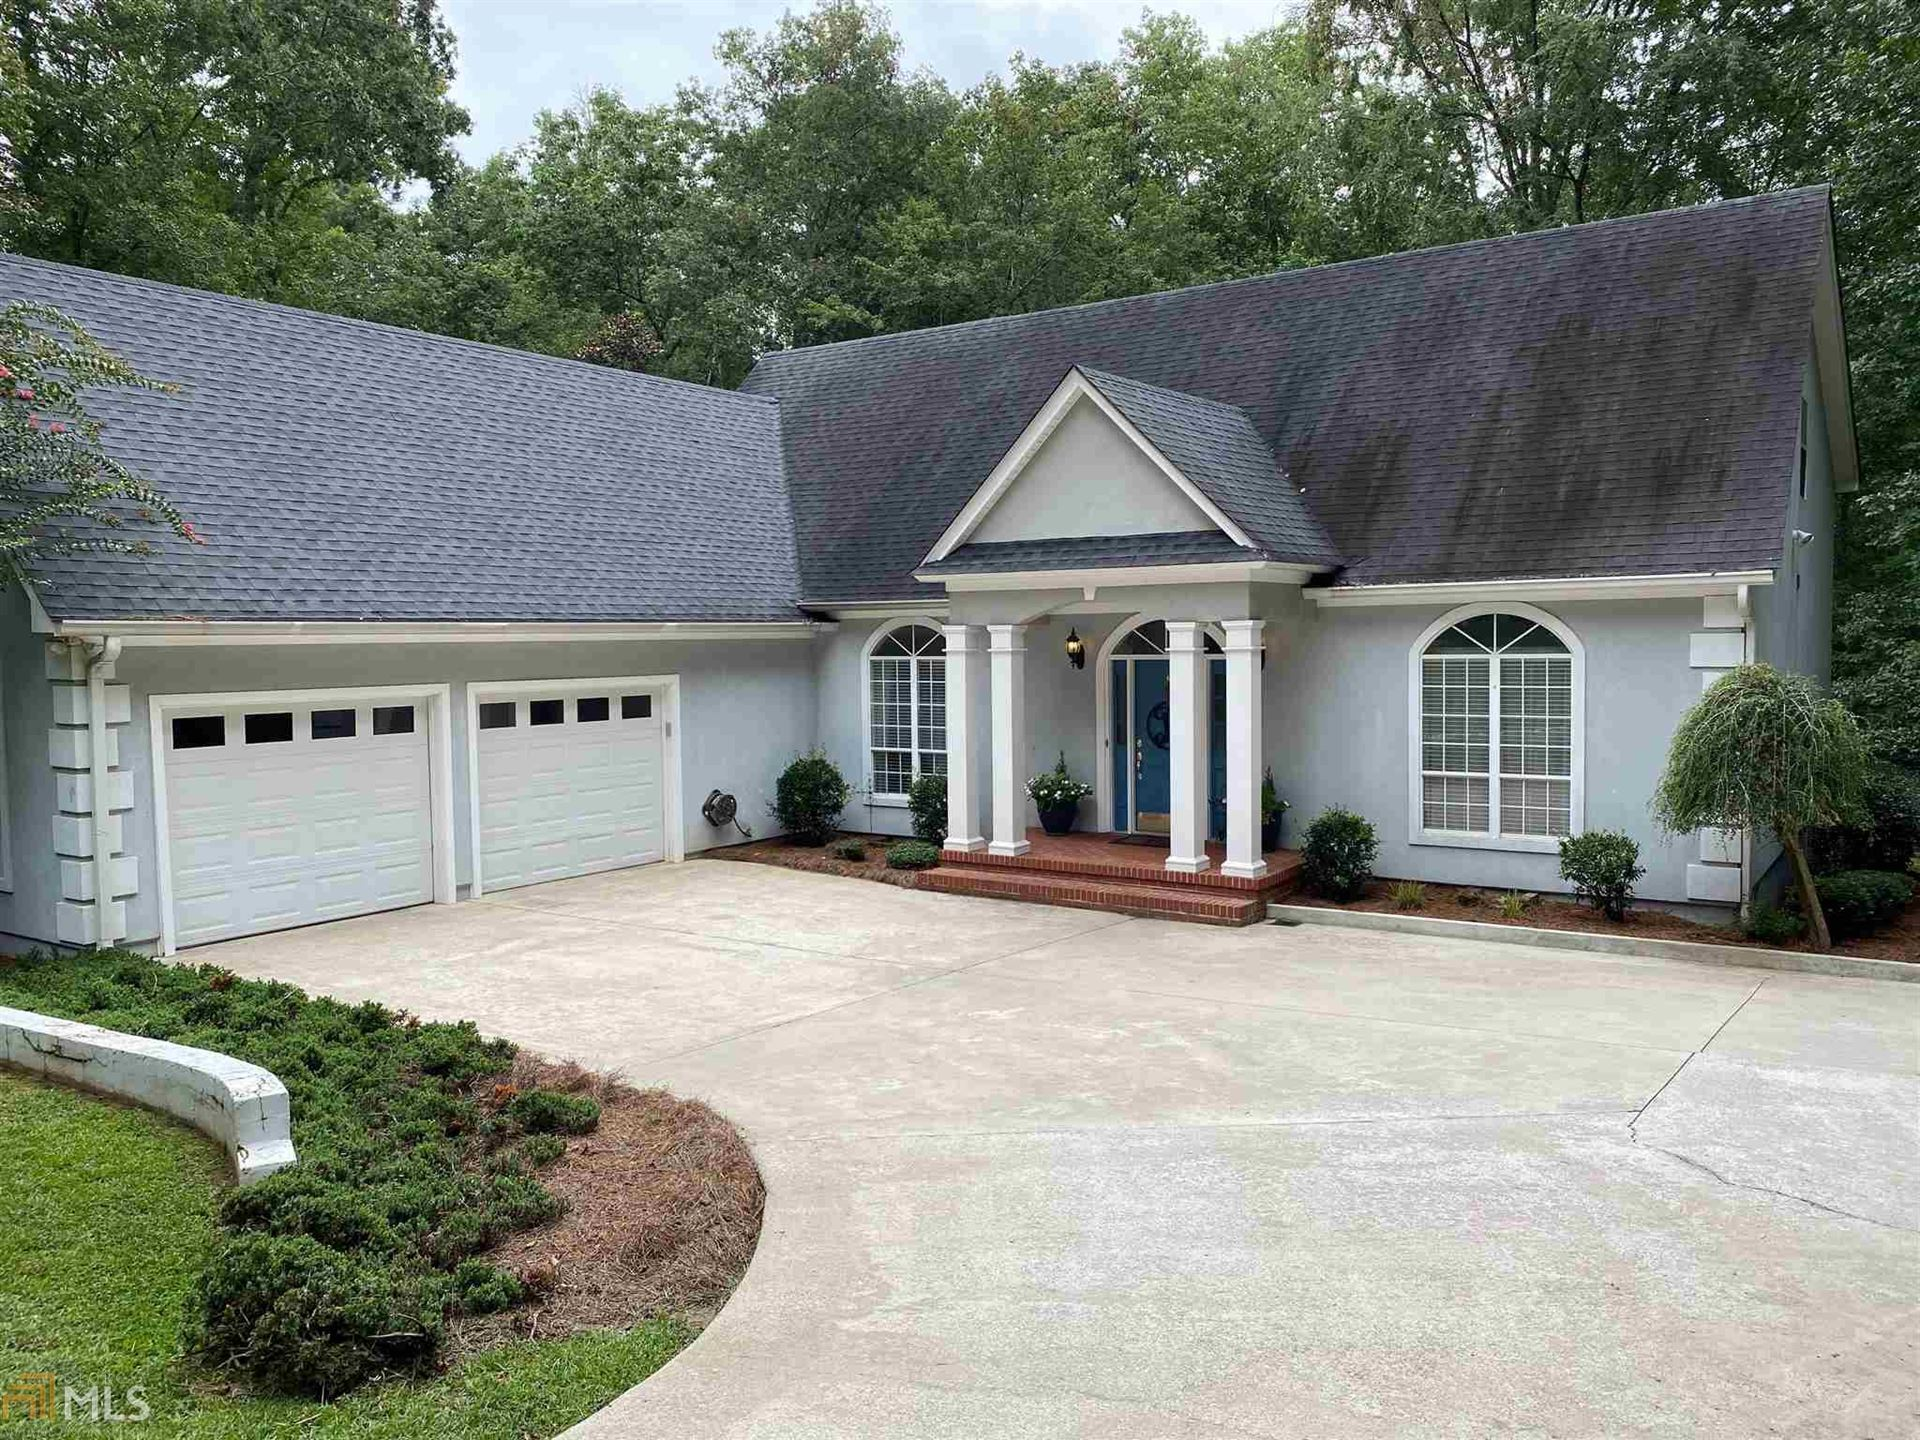 Photo of 623 Dogwood Dr, Sandersville, GA 31082 (MLS # 8846473)